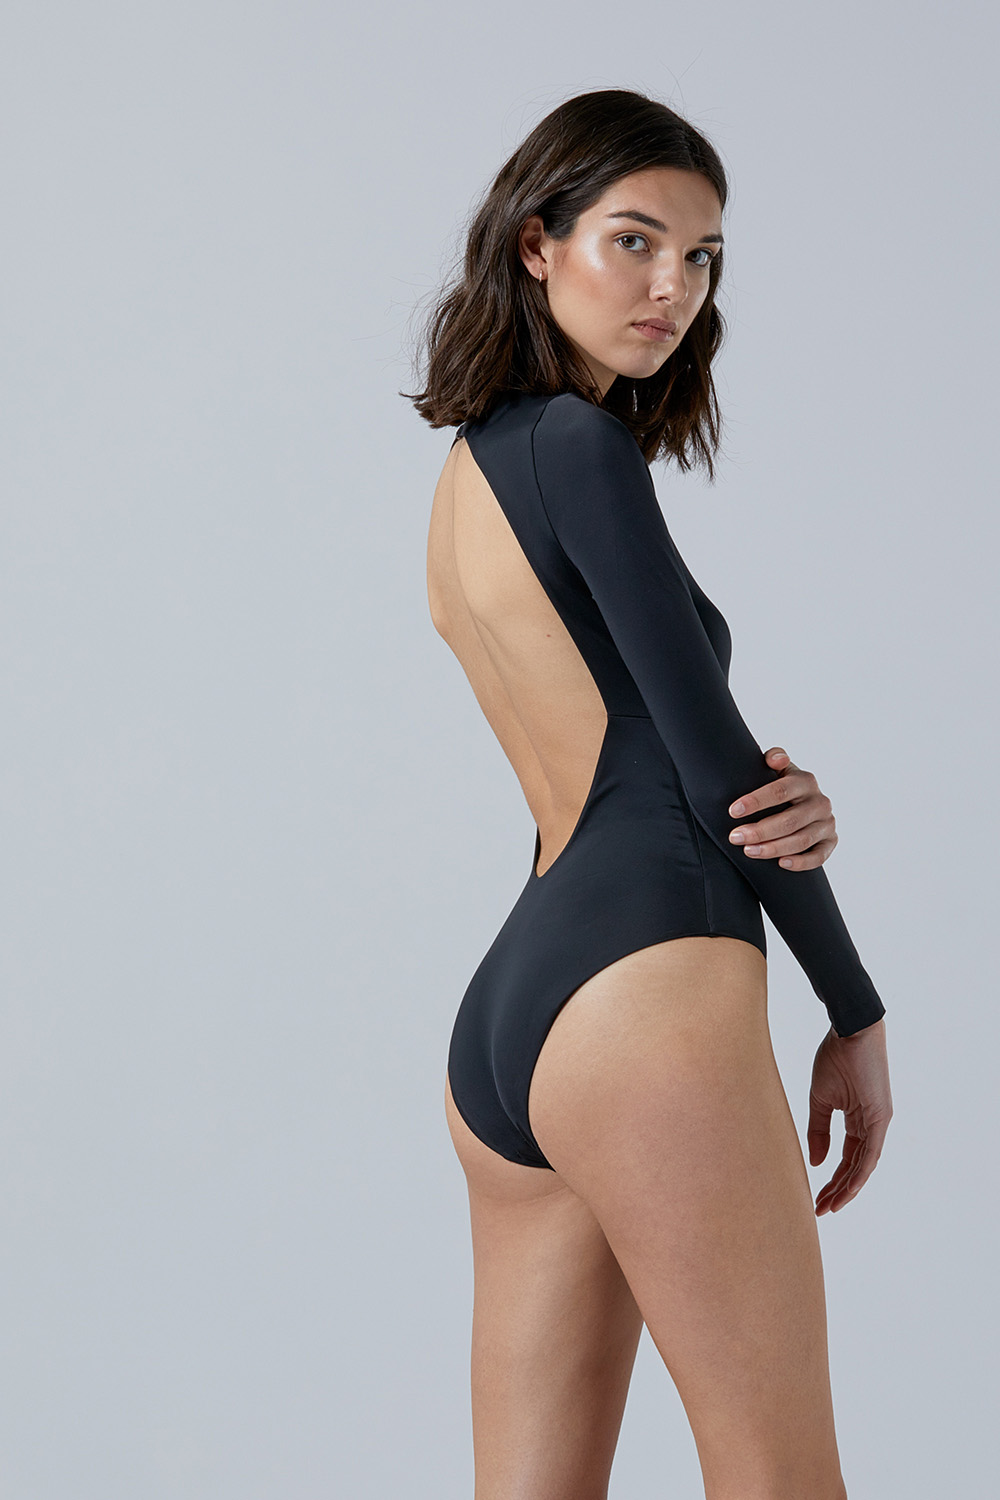 NOW_THEN Eugenie bodysuit in black swimsuit eco handmade